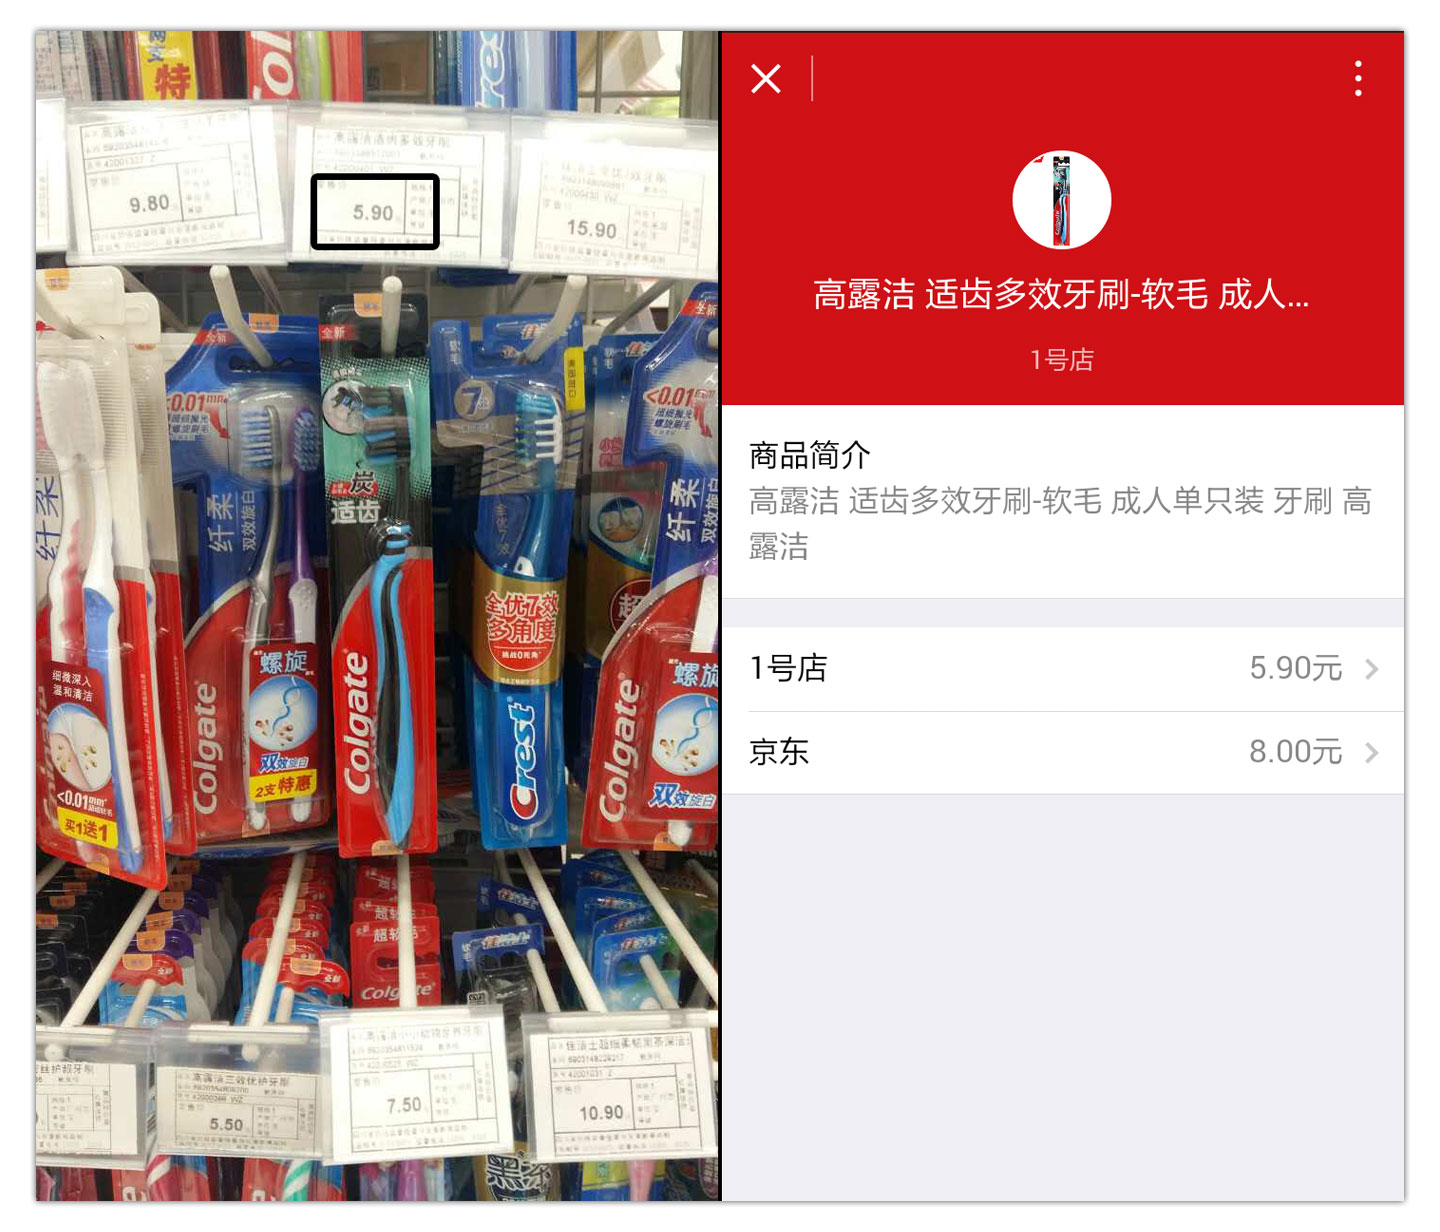 WeChat Barcode Scanning Toothbrush